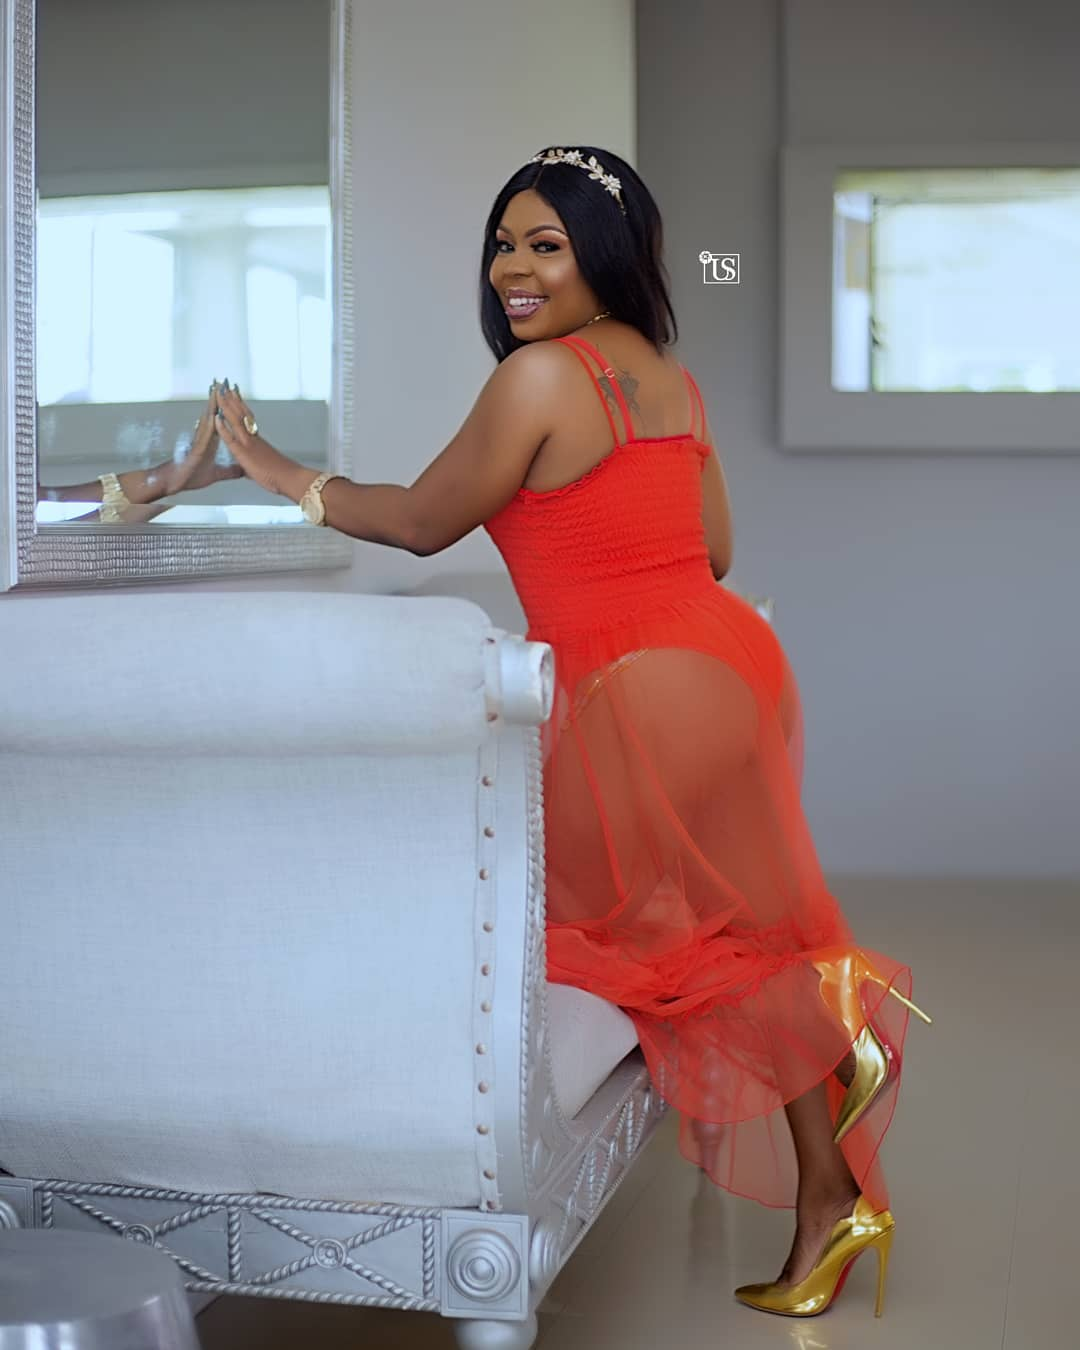 God Used My Marital Issues With Abrokwah To Bless Me- Afia Schwar